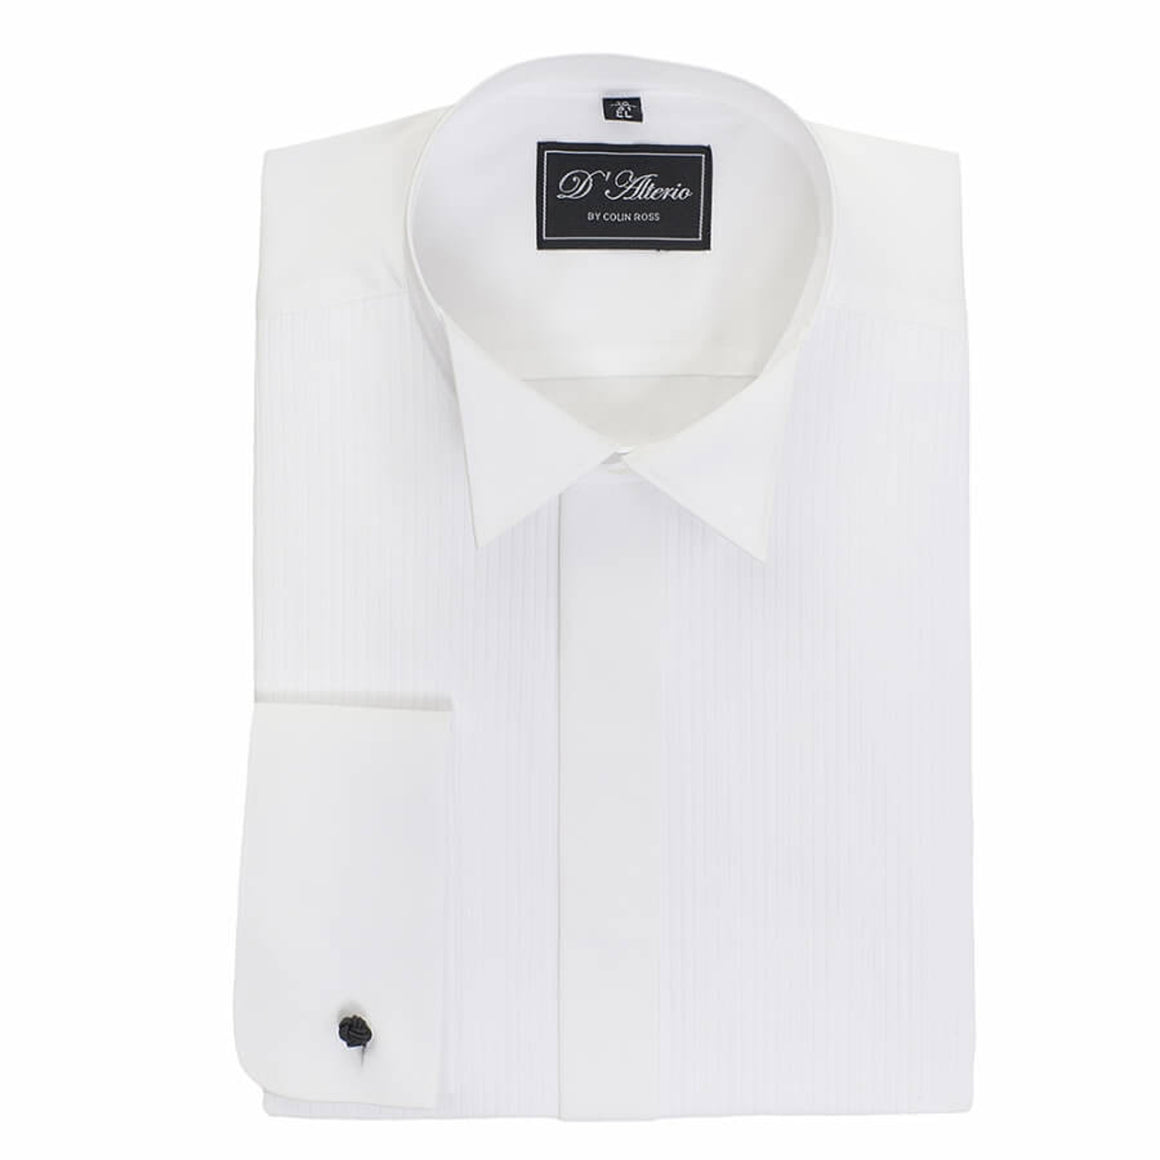 Pleated Wing Collar Dress Shirt for Men in White X-Long Length